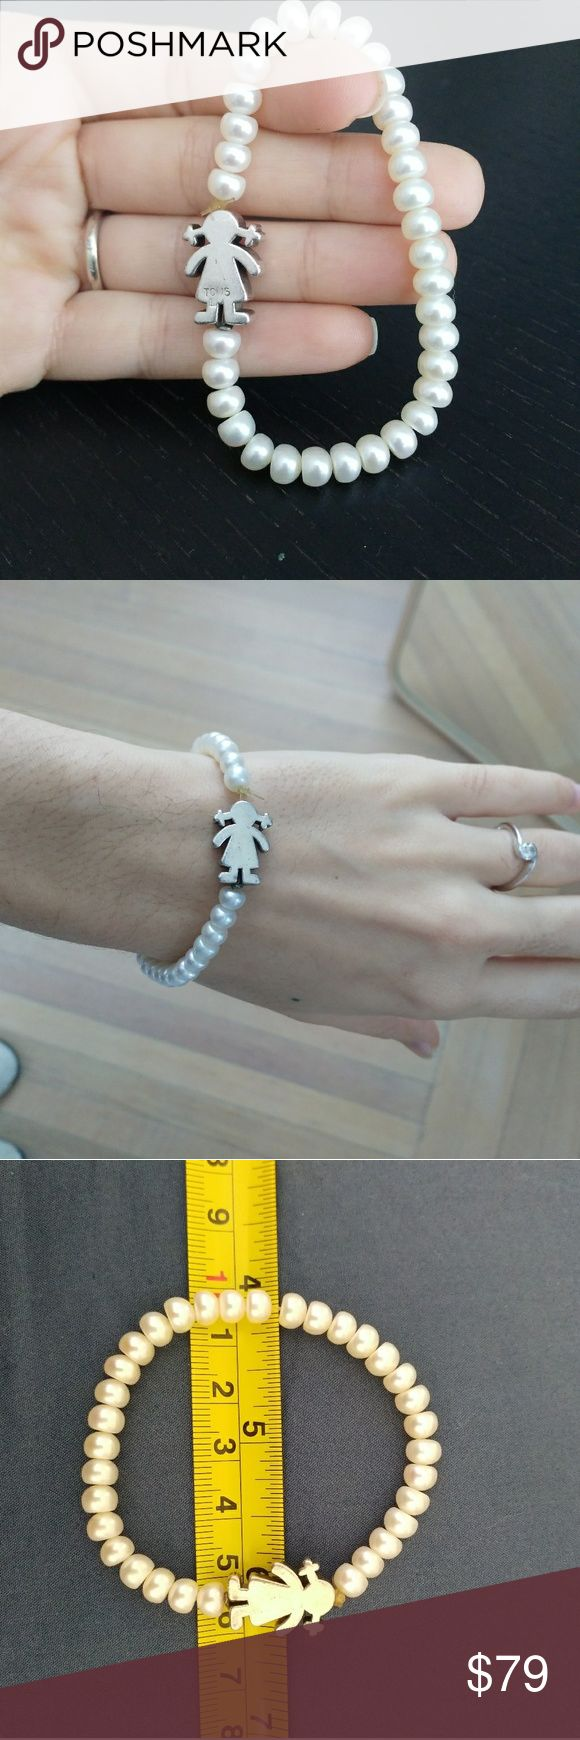 HOT!! 🔥🔥Elastic tous bracelet Sweet Dolls Tous bracelet with pearls and silver Tous Jewelry Bracelets